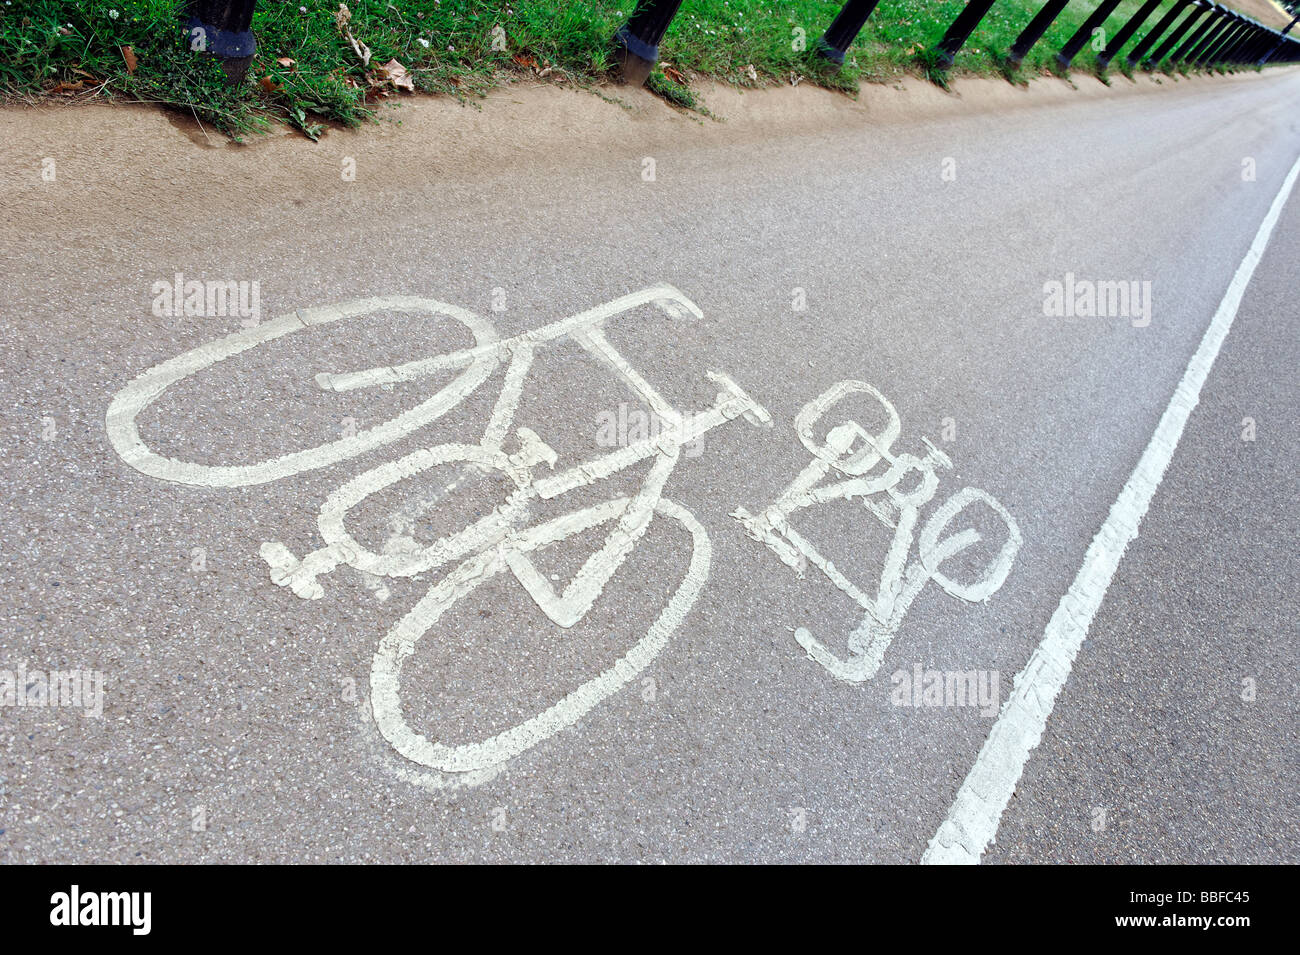 Painted sign on road indicating a cycle way - Stock Image